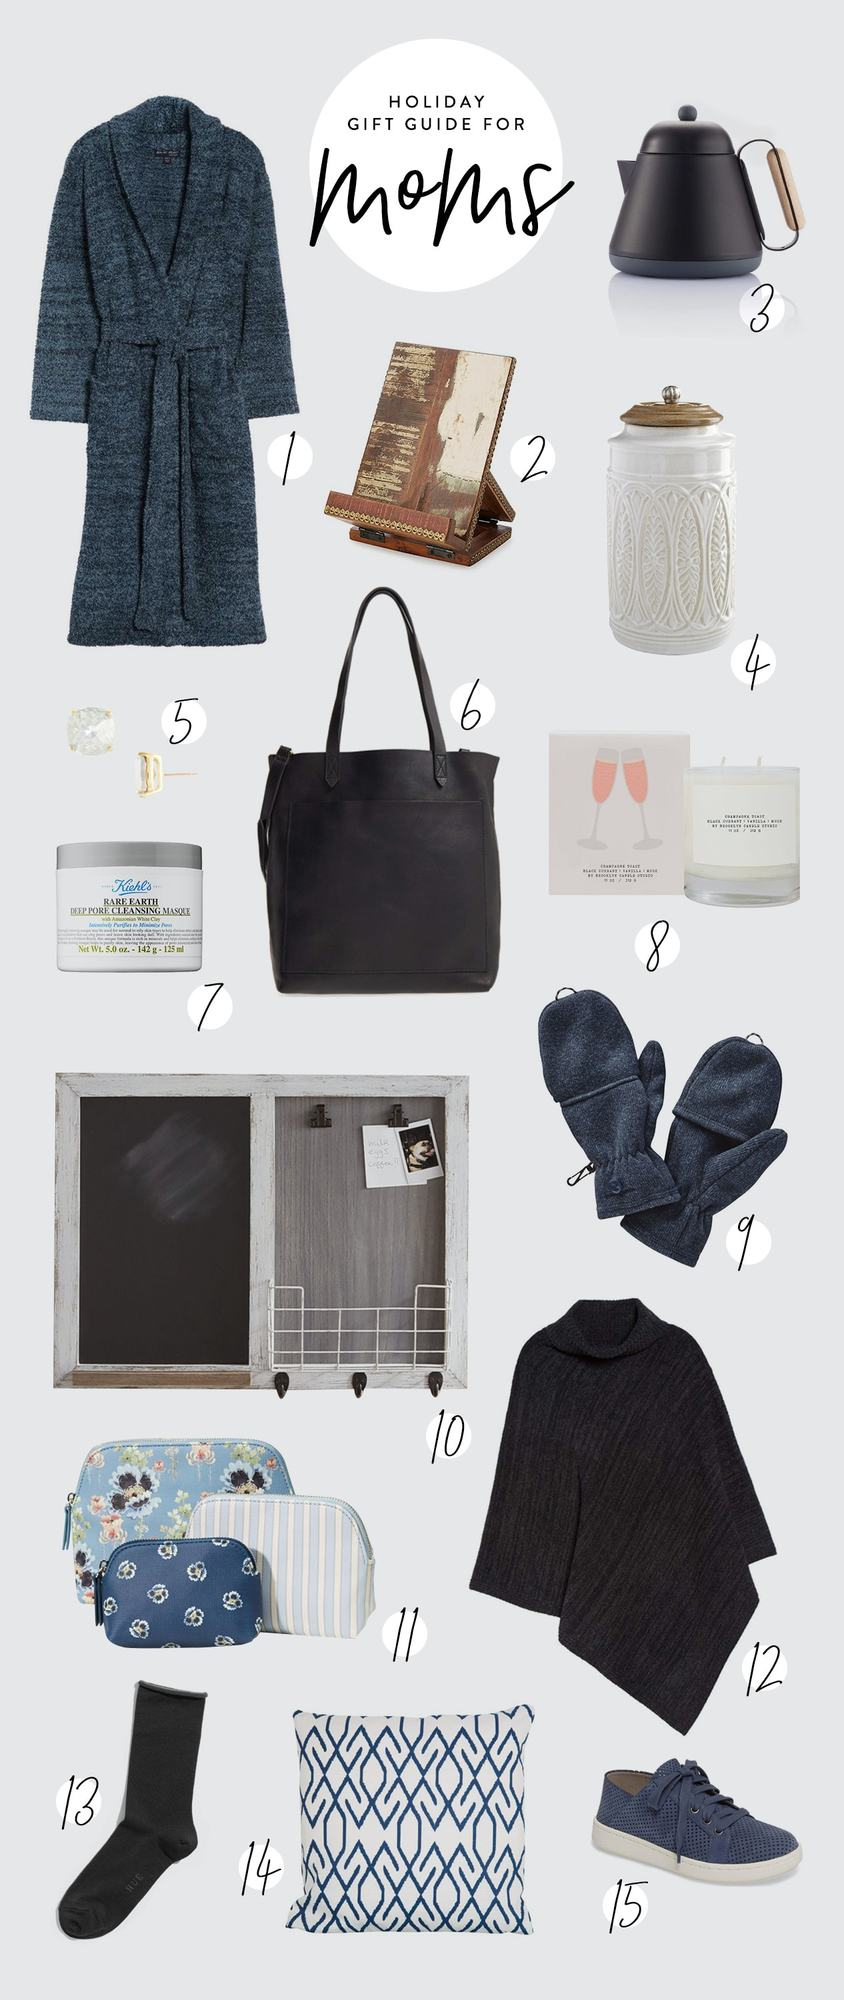 Looking to get your mom the perfect holiday gift? We've rounded up some of the best holiday gifts for moms. We pulled items at all different price points from a cozy robe to a leather tote. #holiday #giftguie #giftsformom